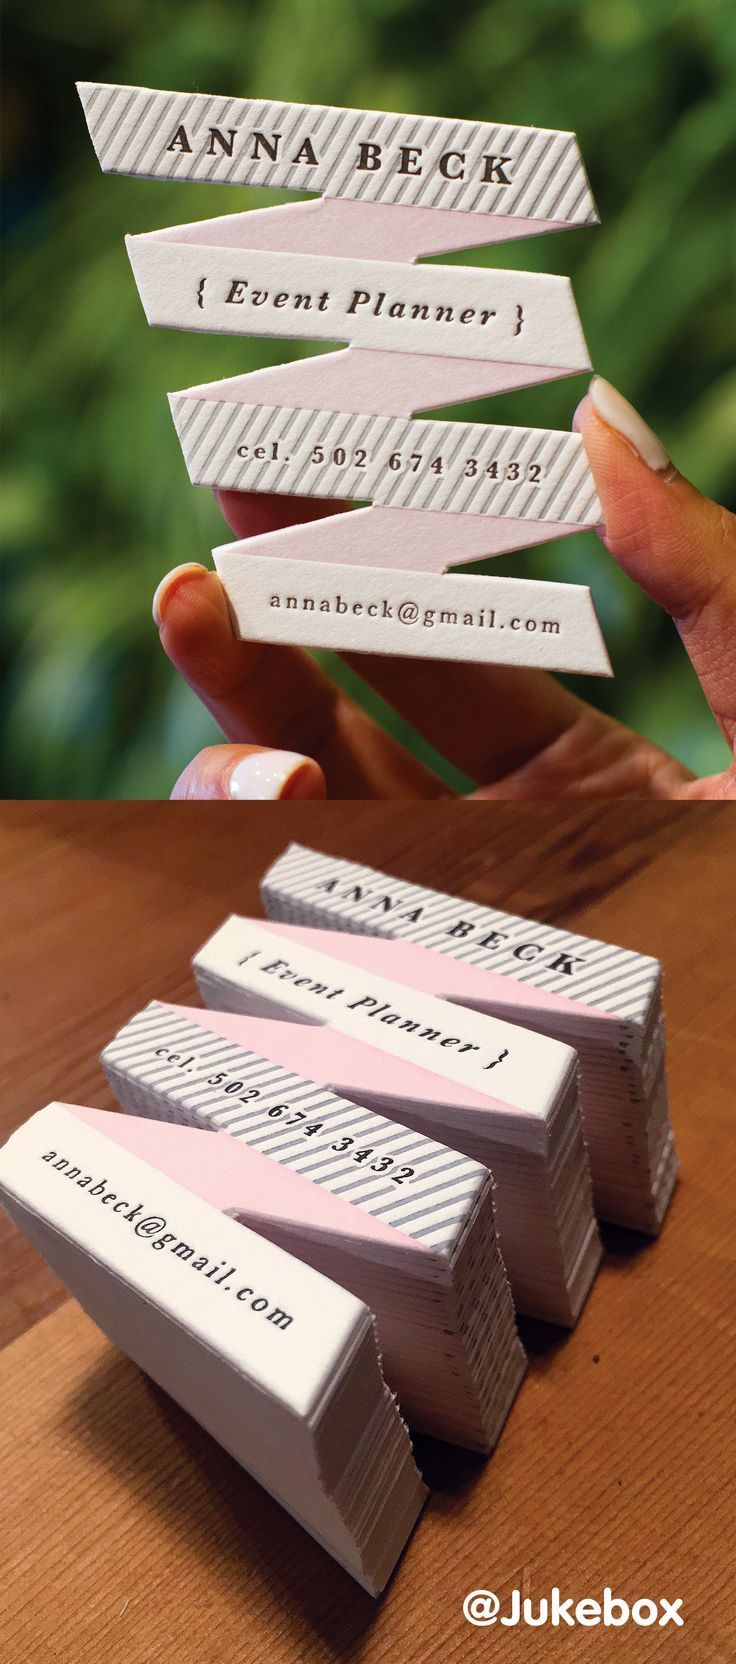 17 best ideas about personalized business cards personalize your business cards a custom die cut shape like these cute letterpressed